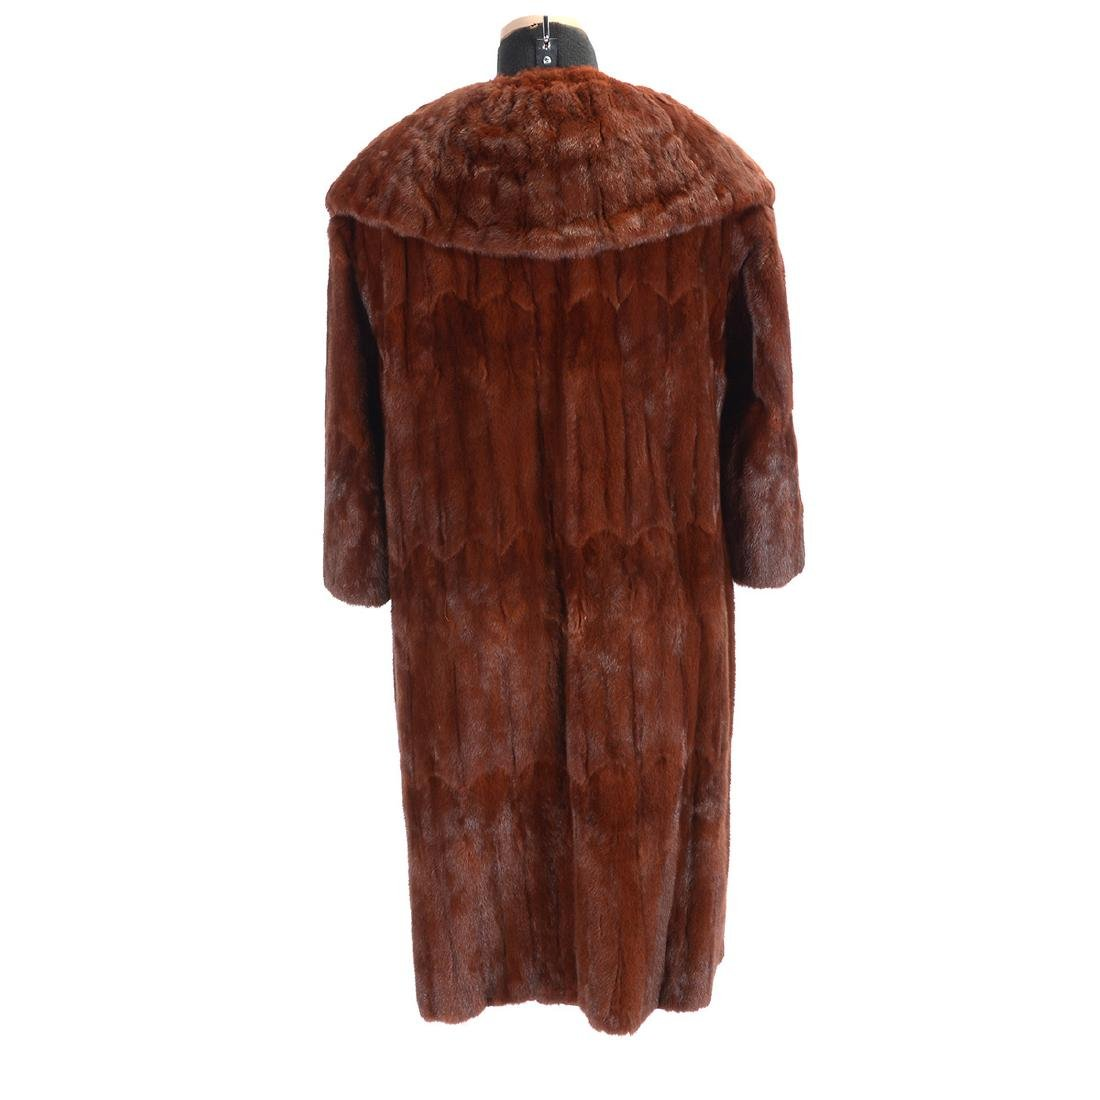 Full Length Sable Coat with Wide 'Lapel' Collar - 4